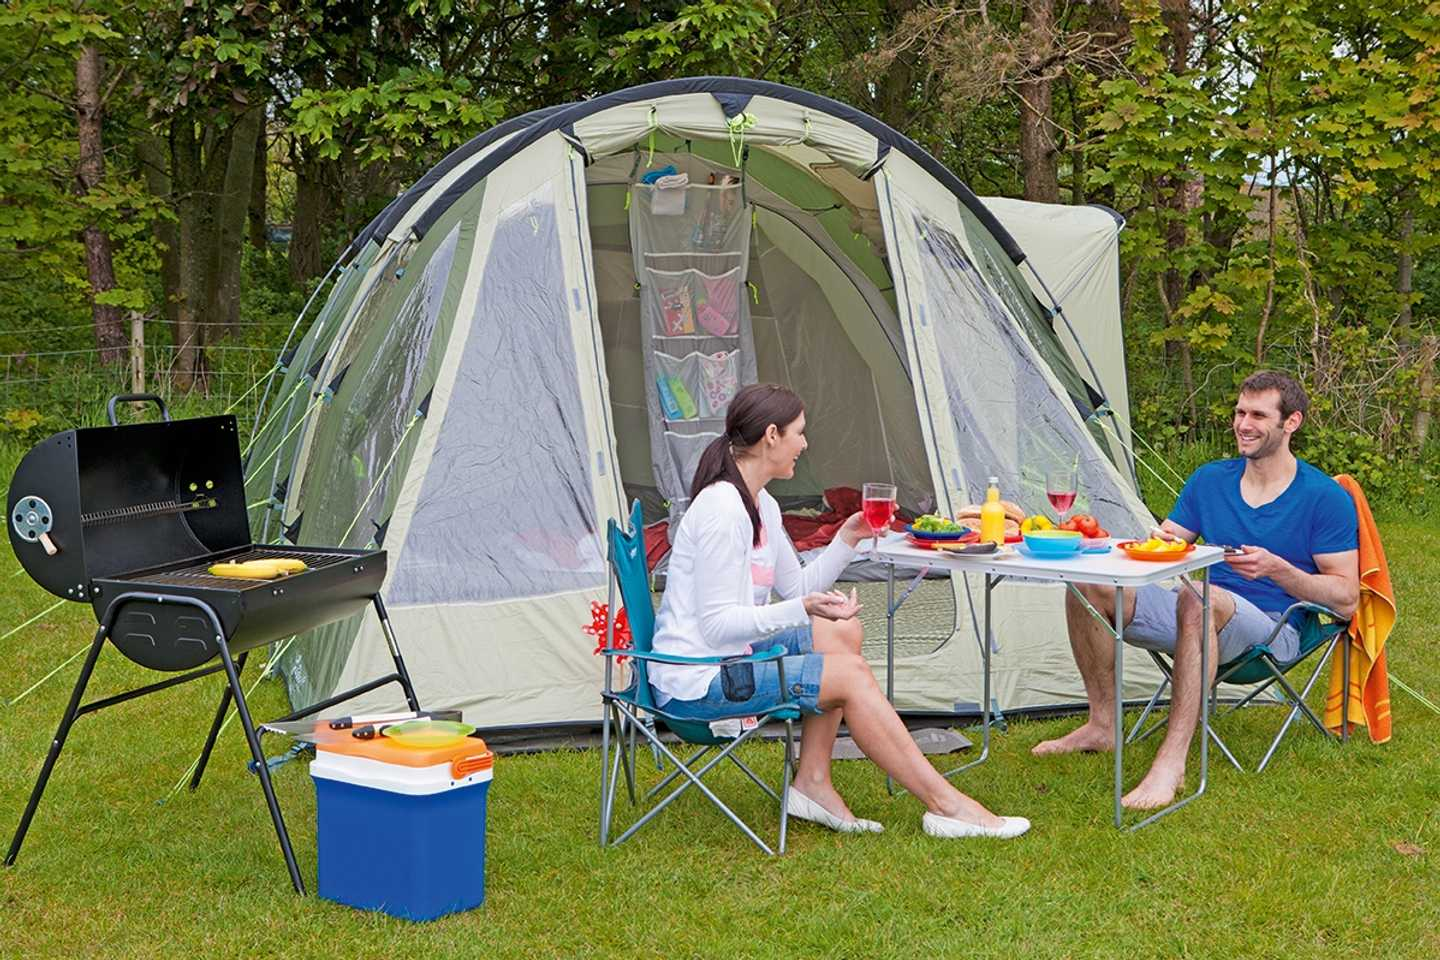 Guests outside their tent with awning